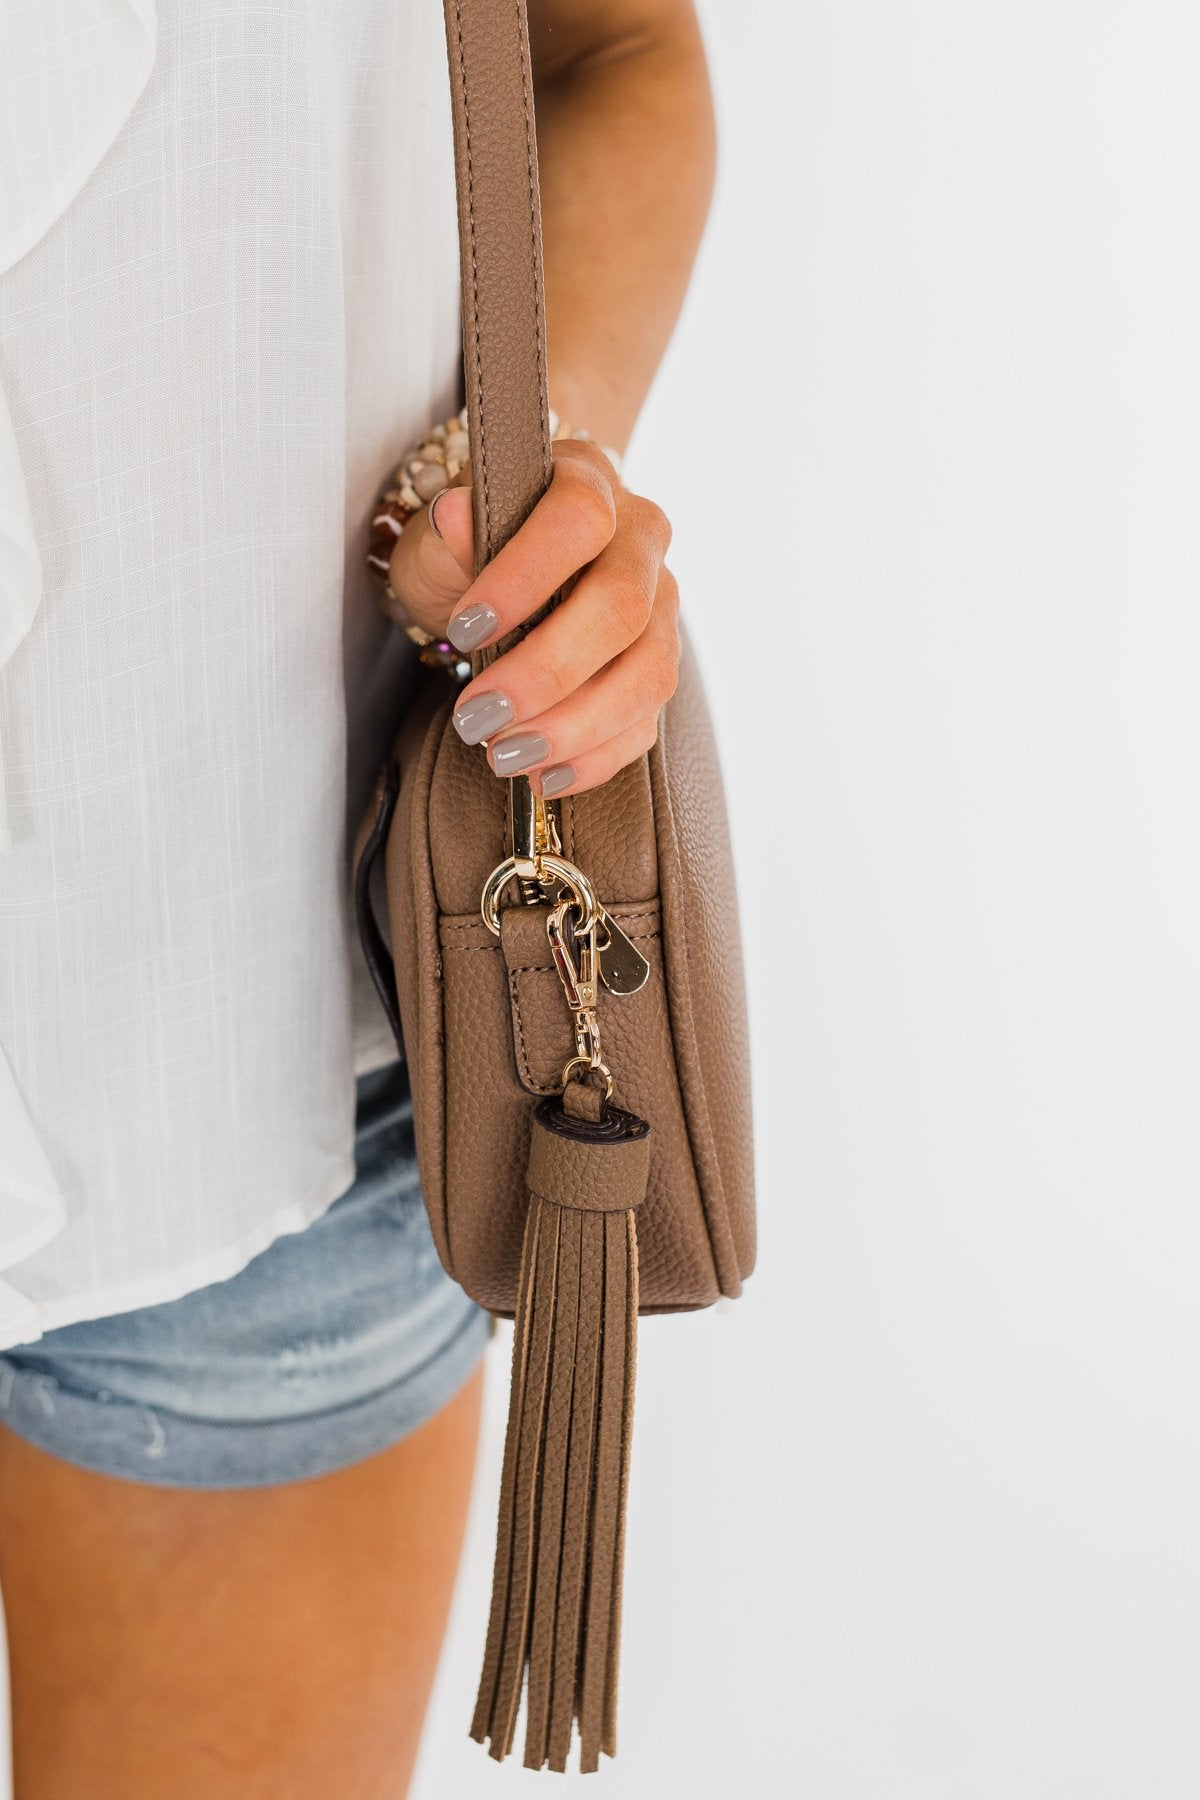 Tassel Convertible Purse- Khaki